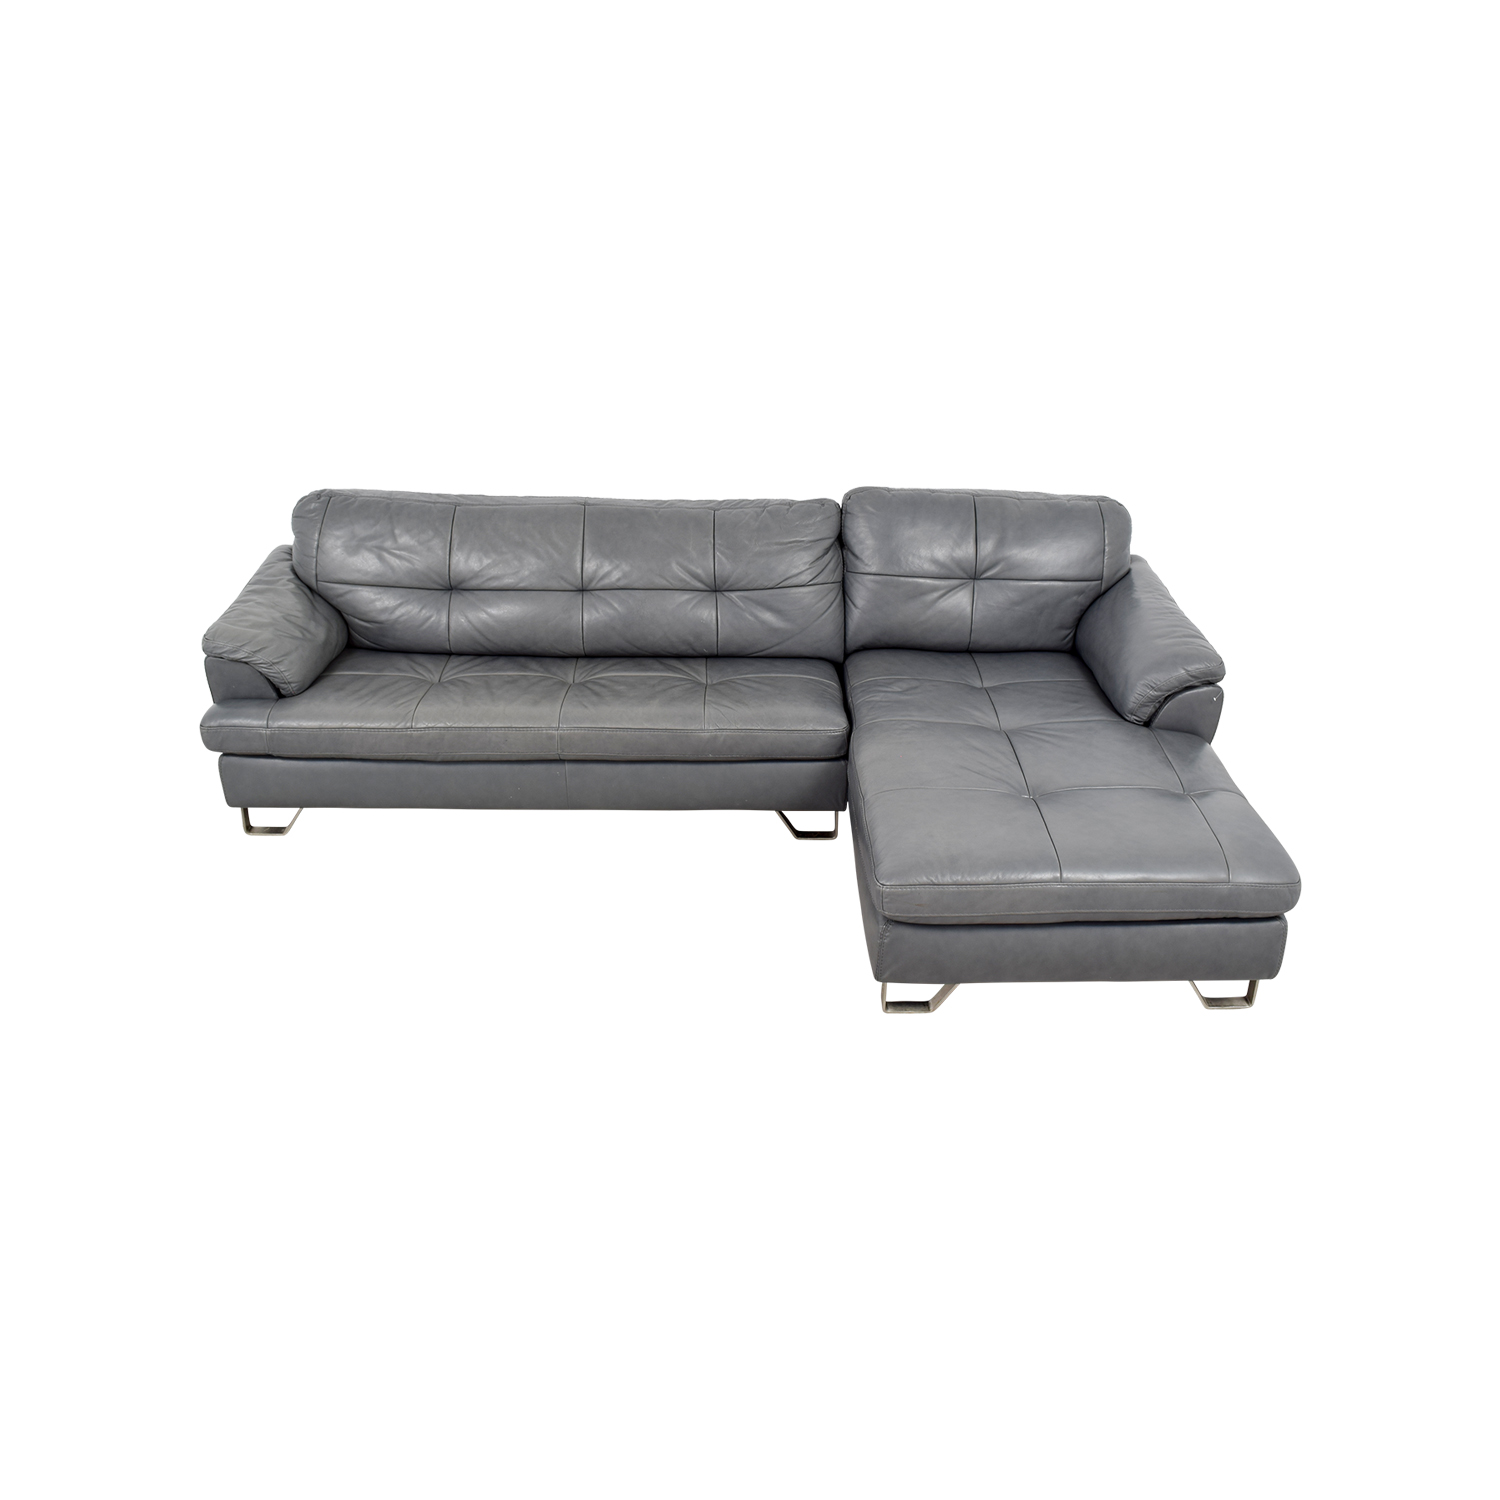 buy Ashley Furniture Gray Tufted Sectional Sofa Ashley Furniture Sofas